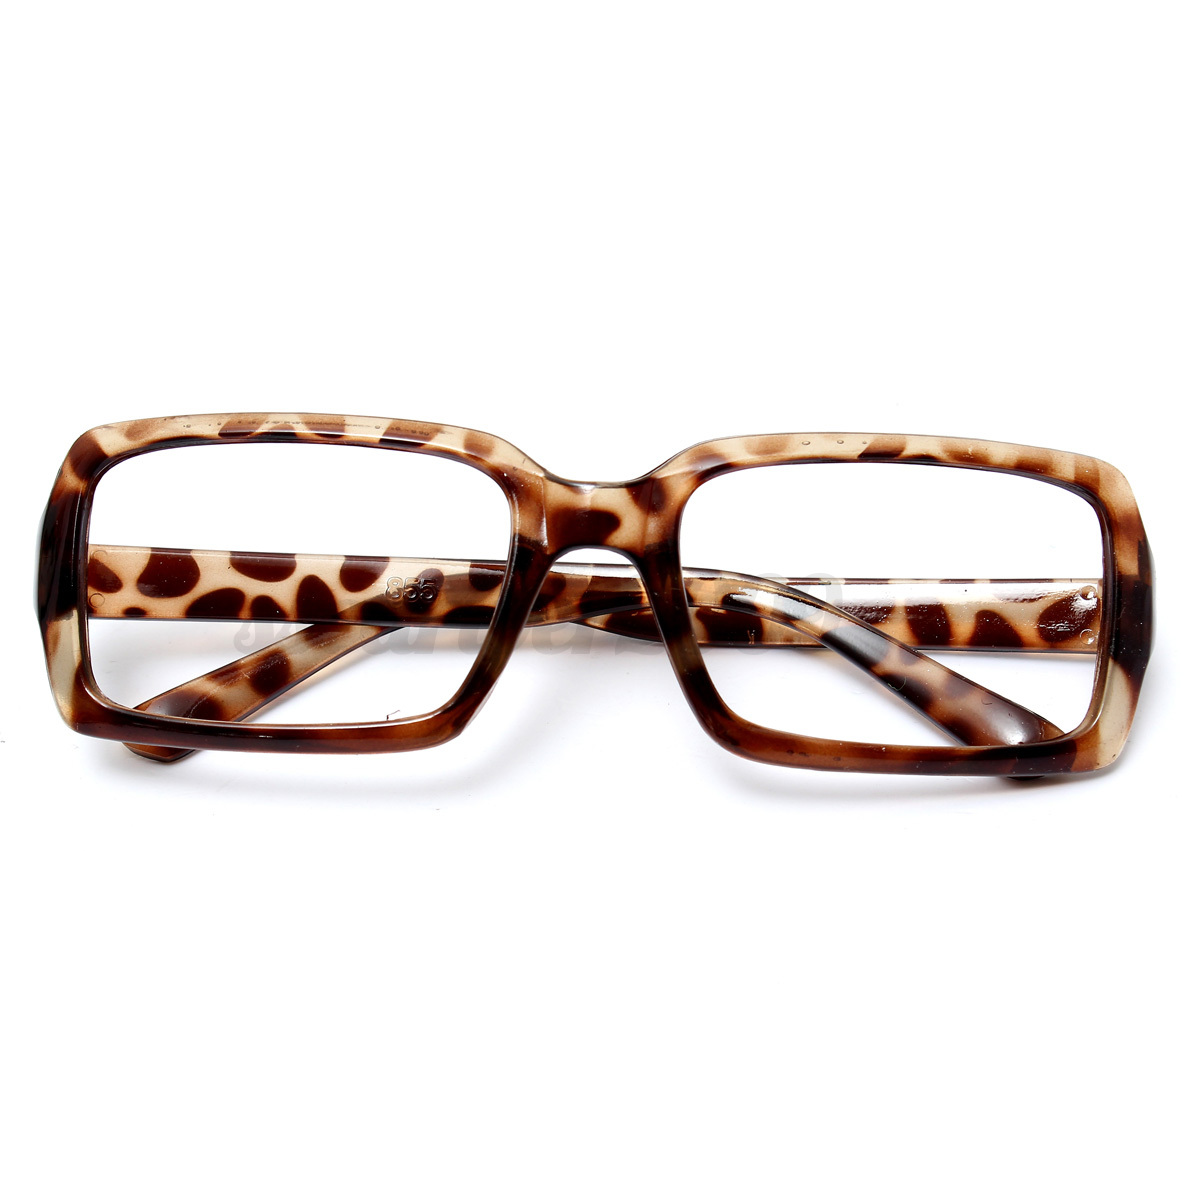 Fashion Square Lens-free Eyeglass Frame Multi-colored ...